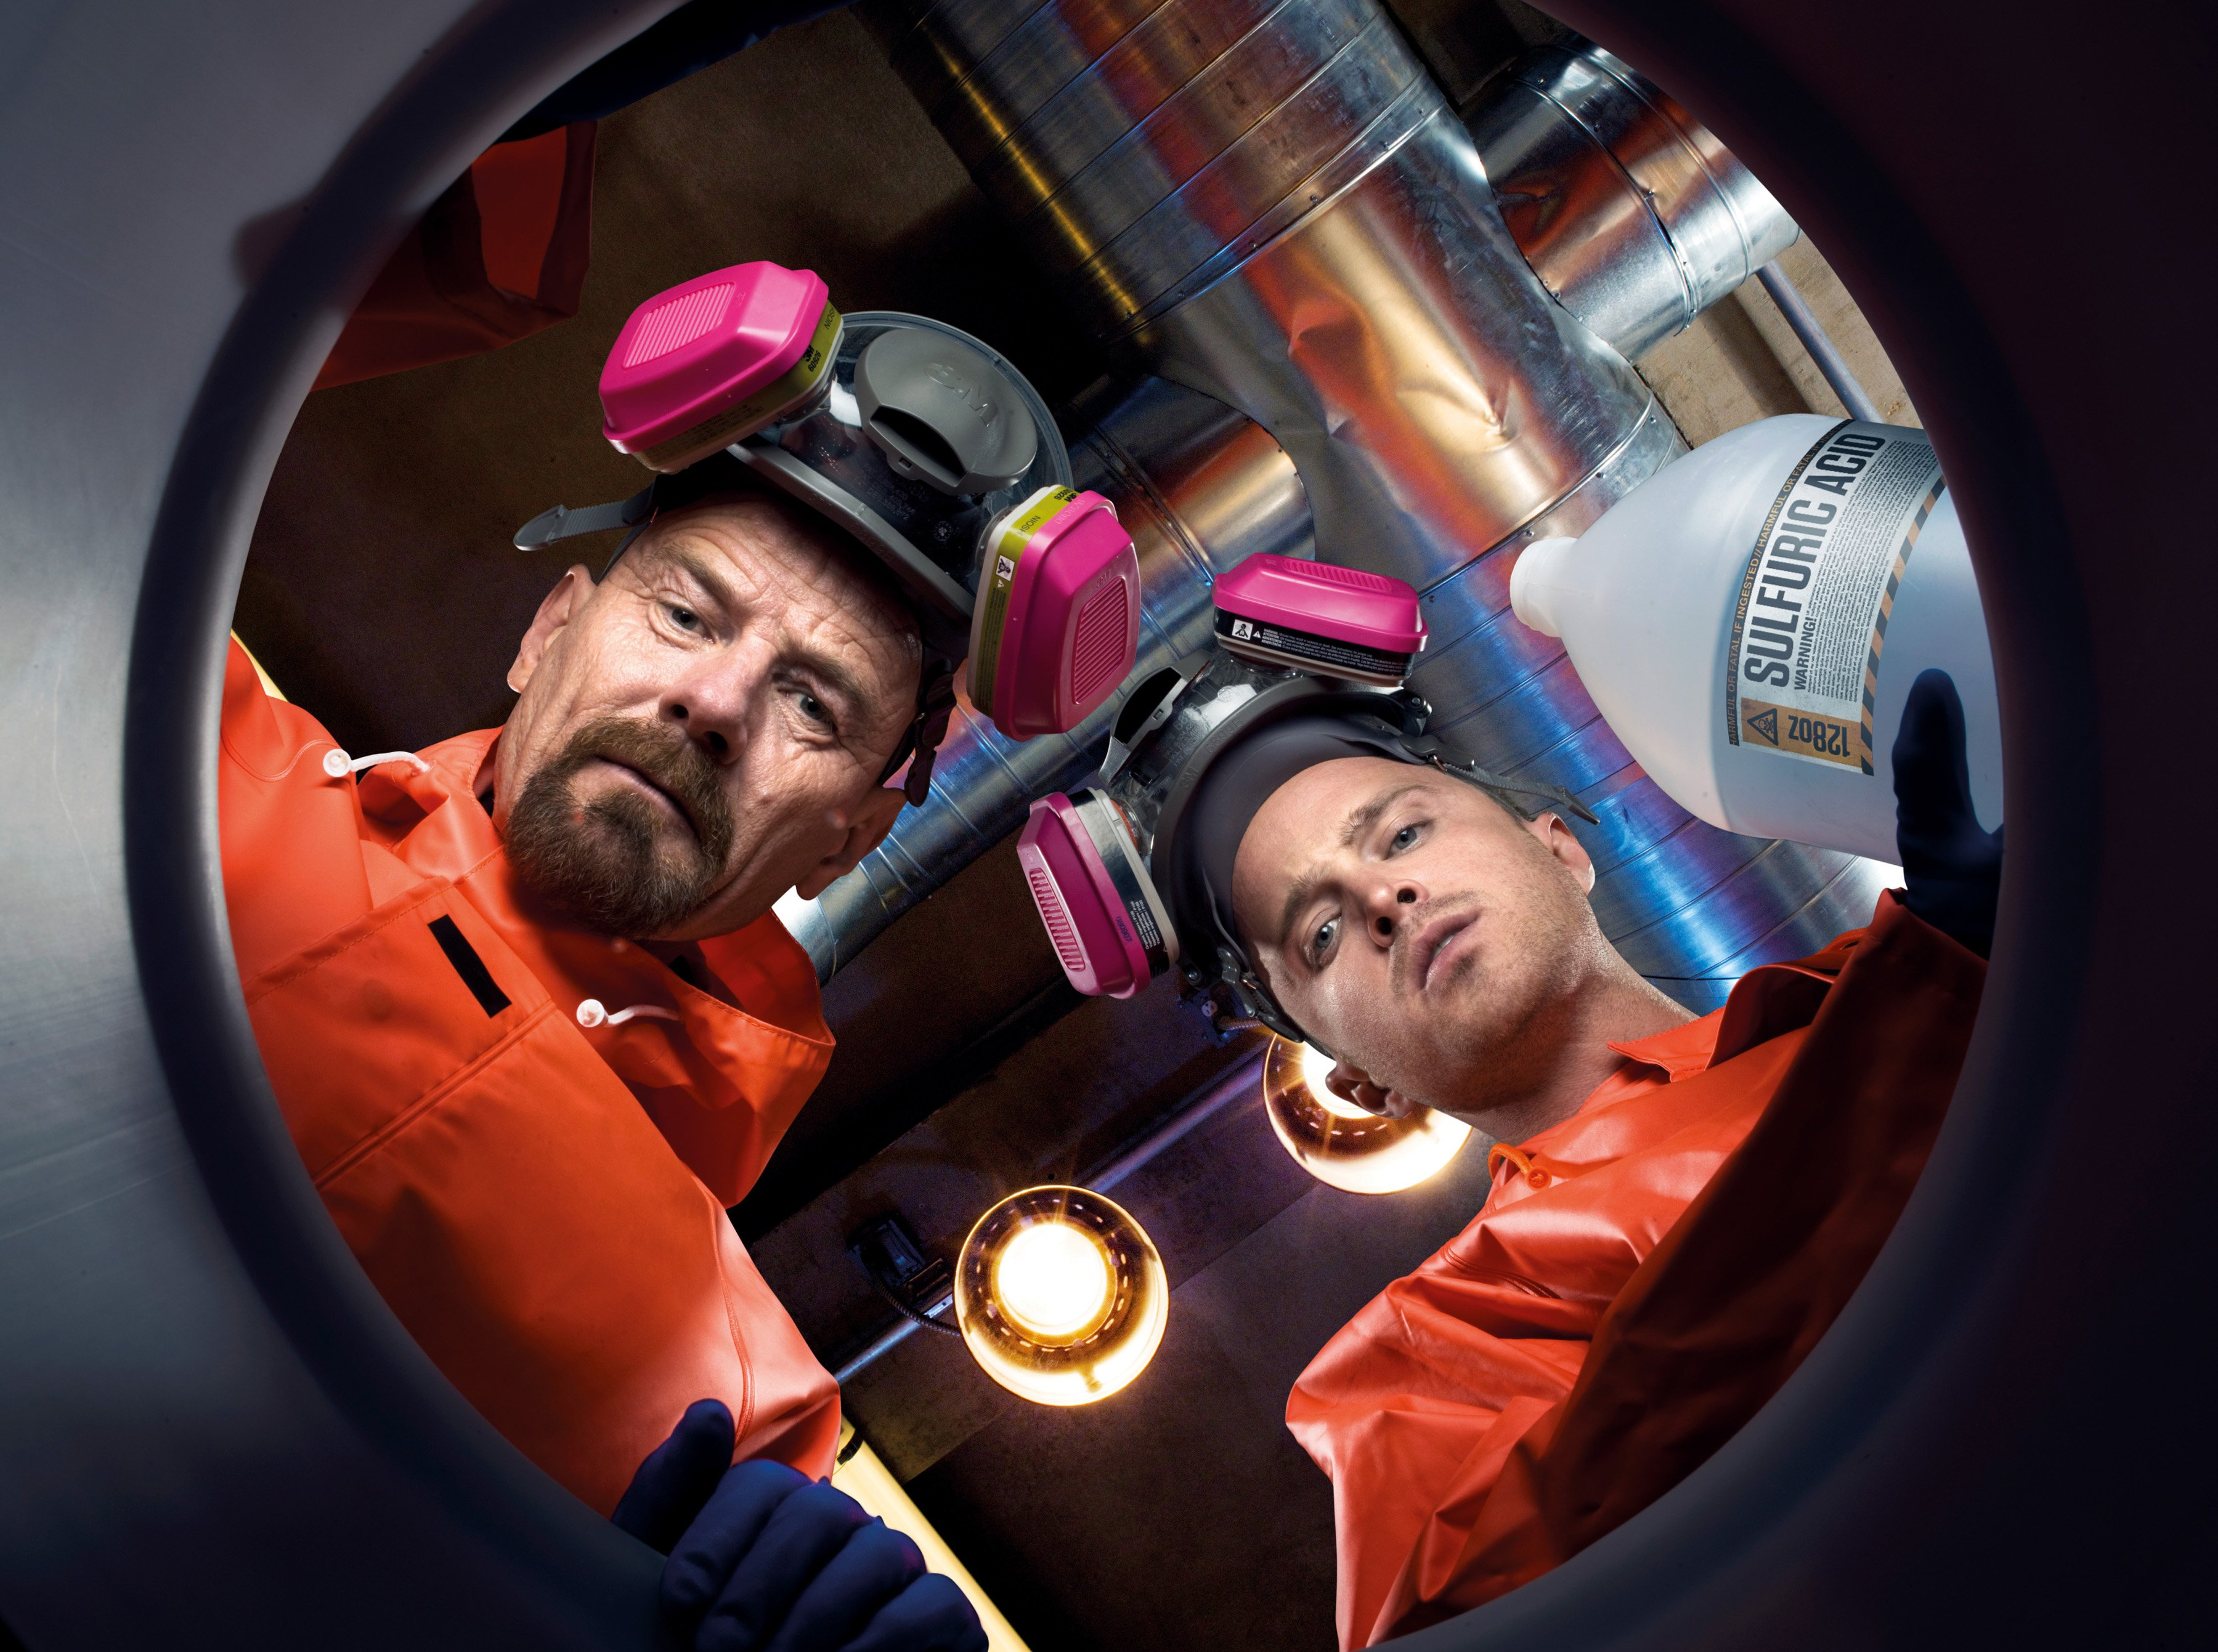 heres how much aaron paul and bryan cranston earn for breaking bad | Guide Self Publishing e scrittura online - Storia Continua